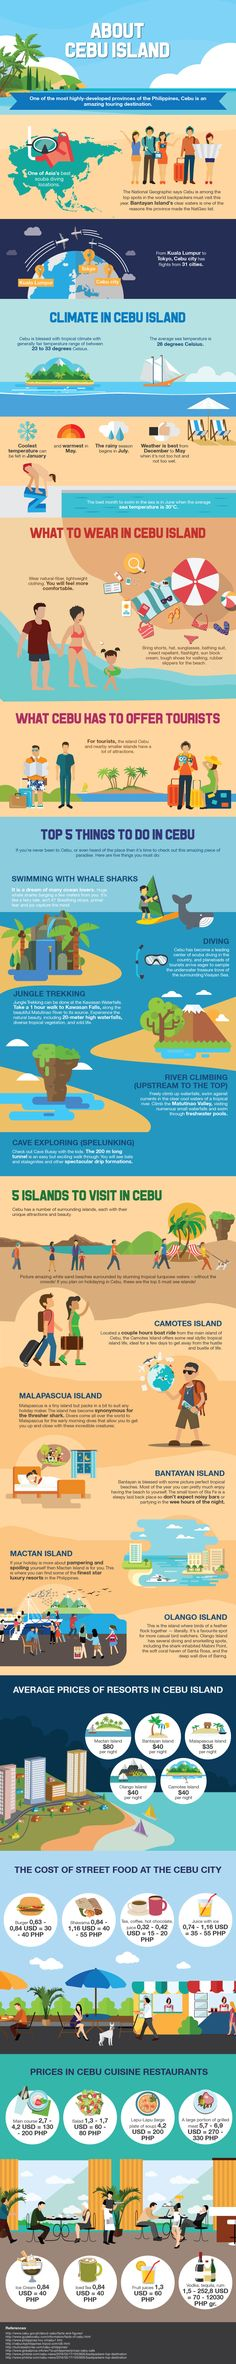 Reasons To Visit Cebu Island More